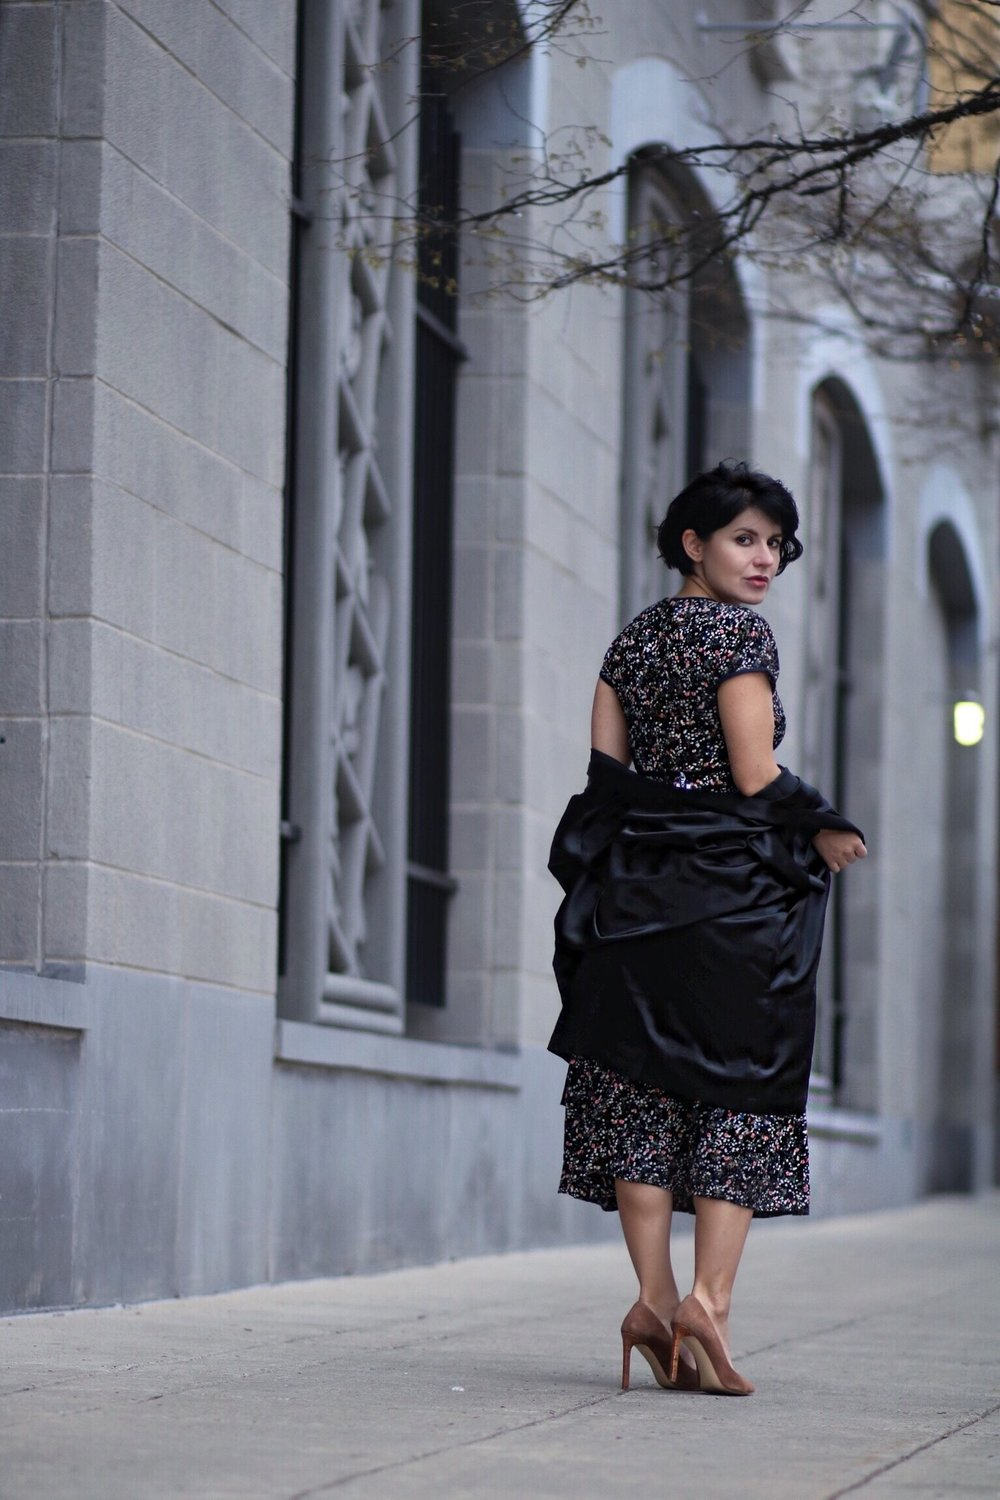 @isabel.alexander's cover photo for 'How to Pick a Floral dress for Spring (for Tall & Petites)'